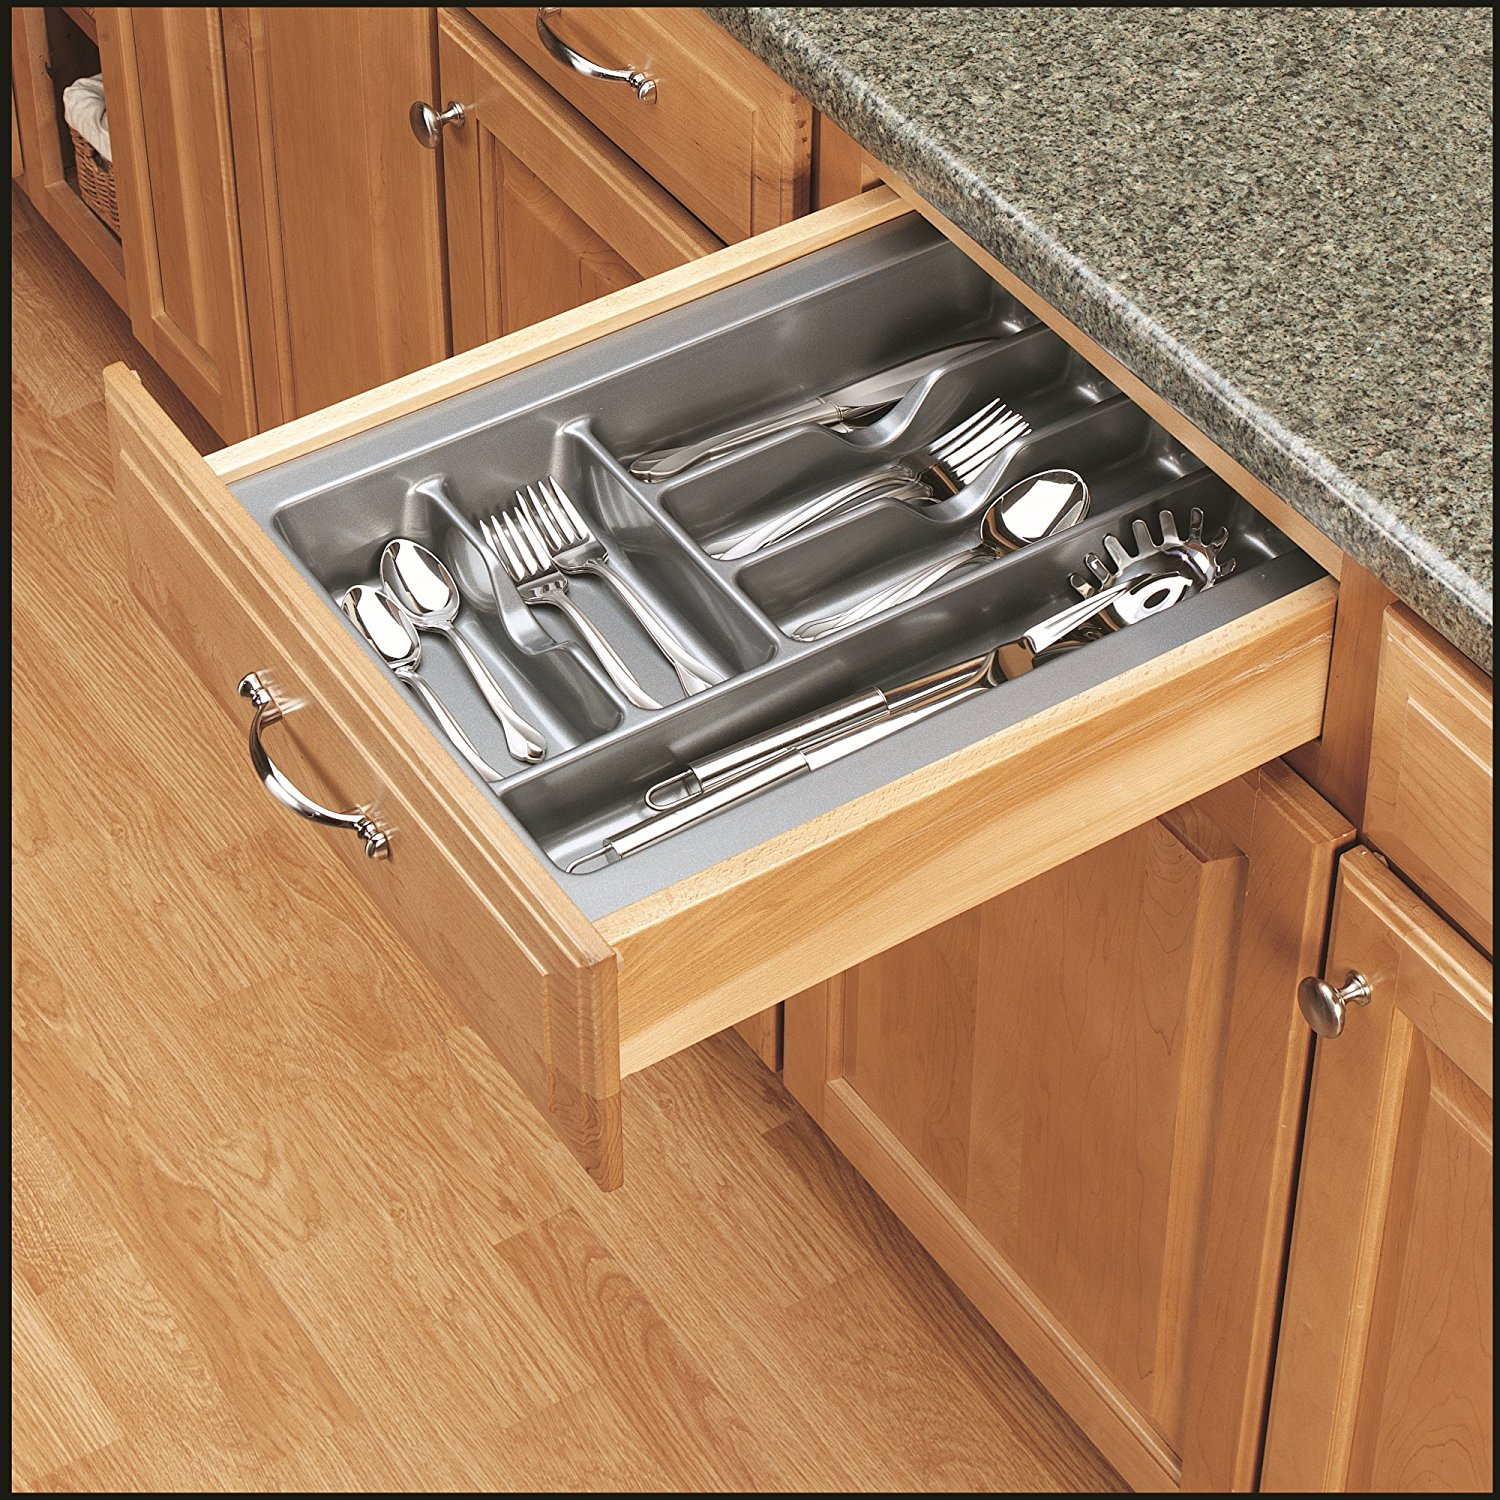 Rev A Shelf Gct 2s 52 Medium Glossy Silver Cutlery Tray Drawer